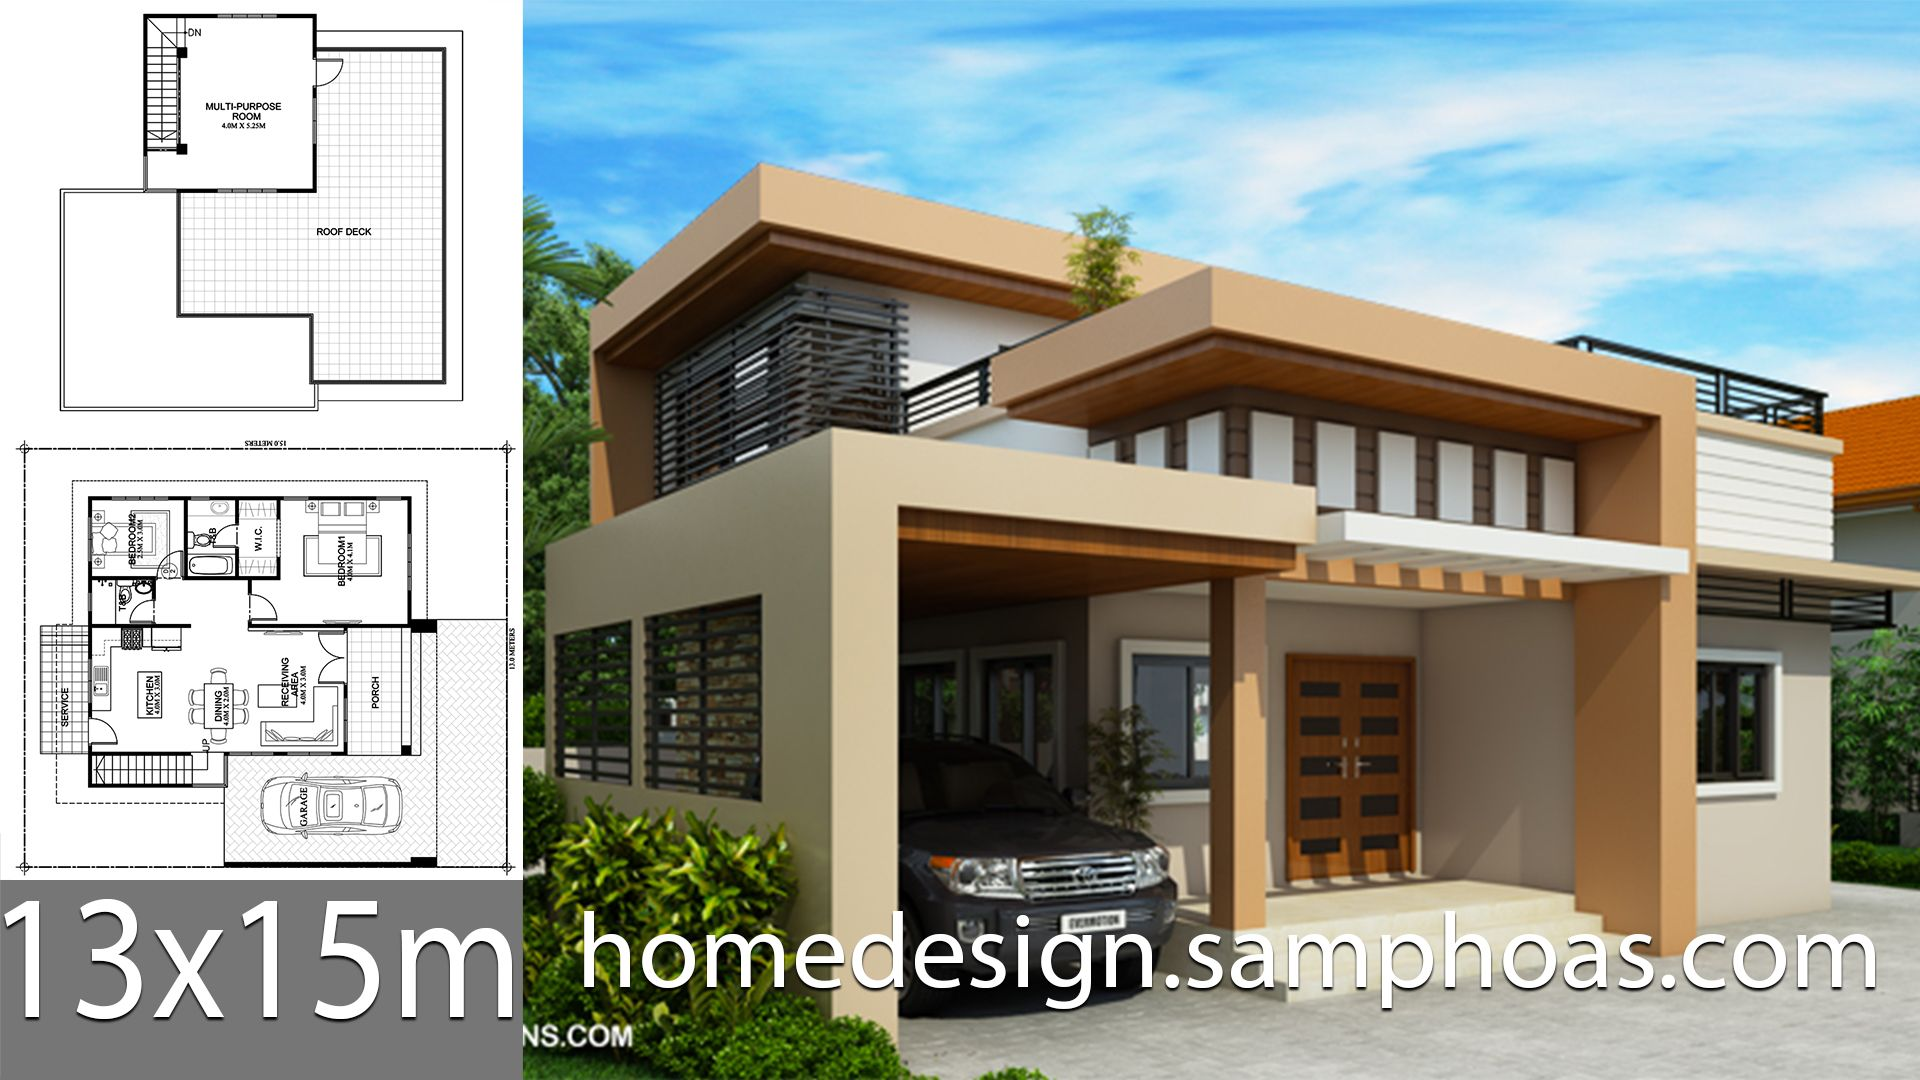 One Story House Plans 13x15m With 2 Bedrooms Simple Bungalow House Designs Bungalow House Design Beautiful House Plans